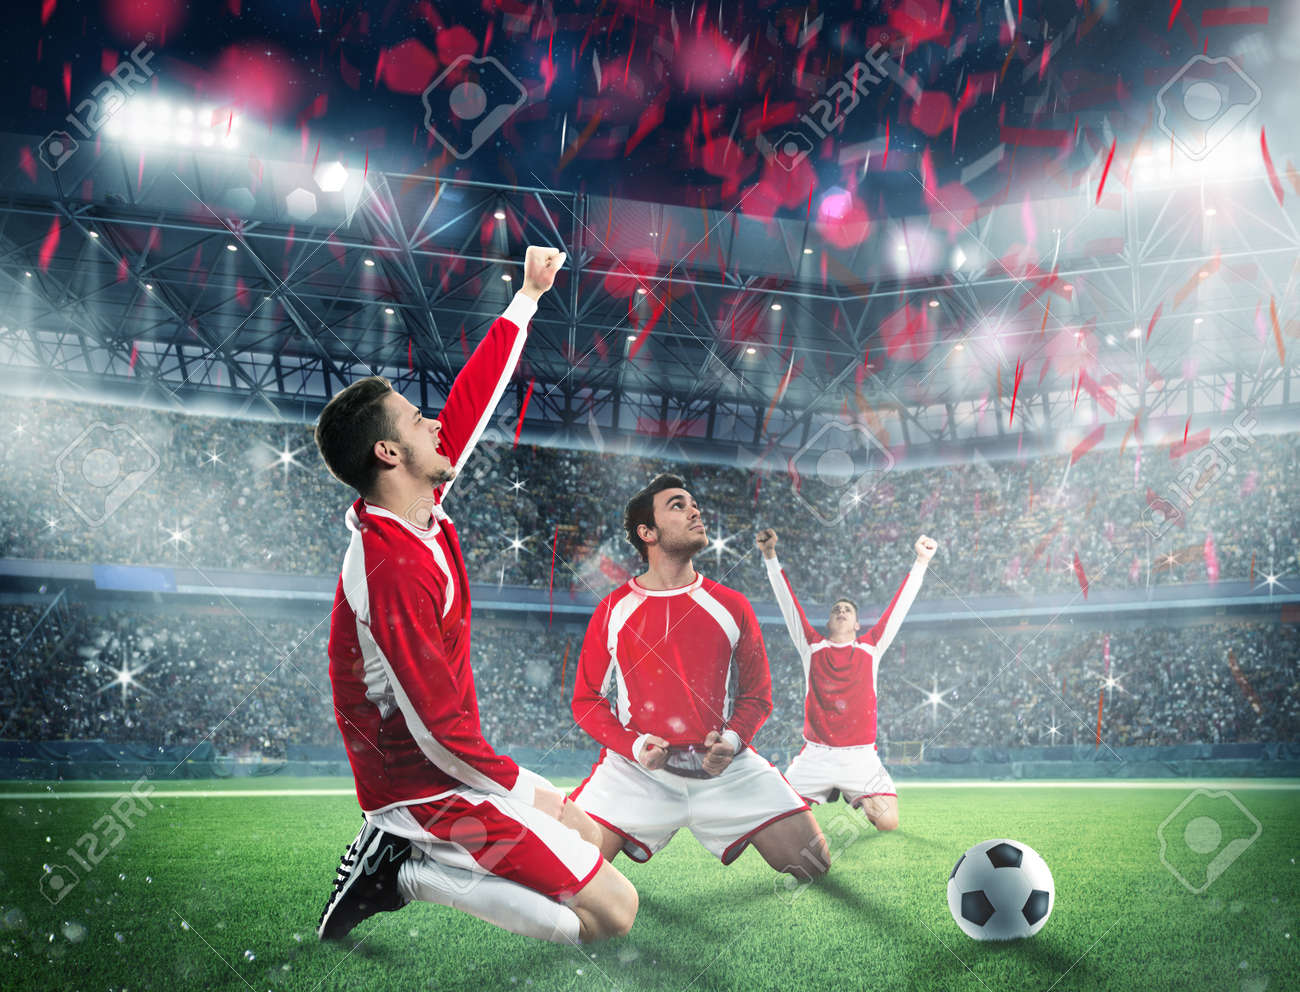 Soccer players exults on a stadium field - 59132382